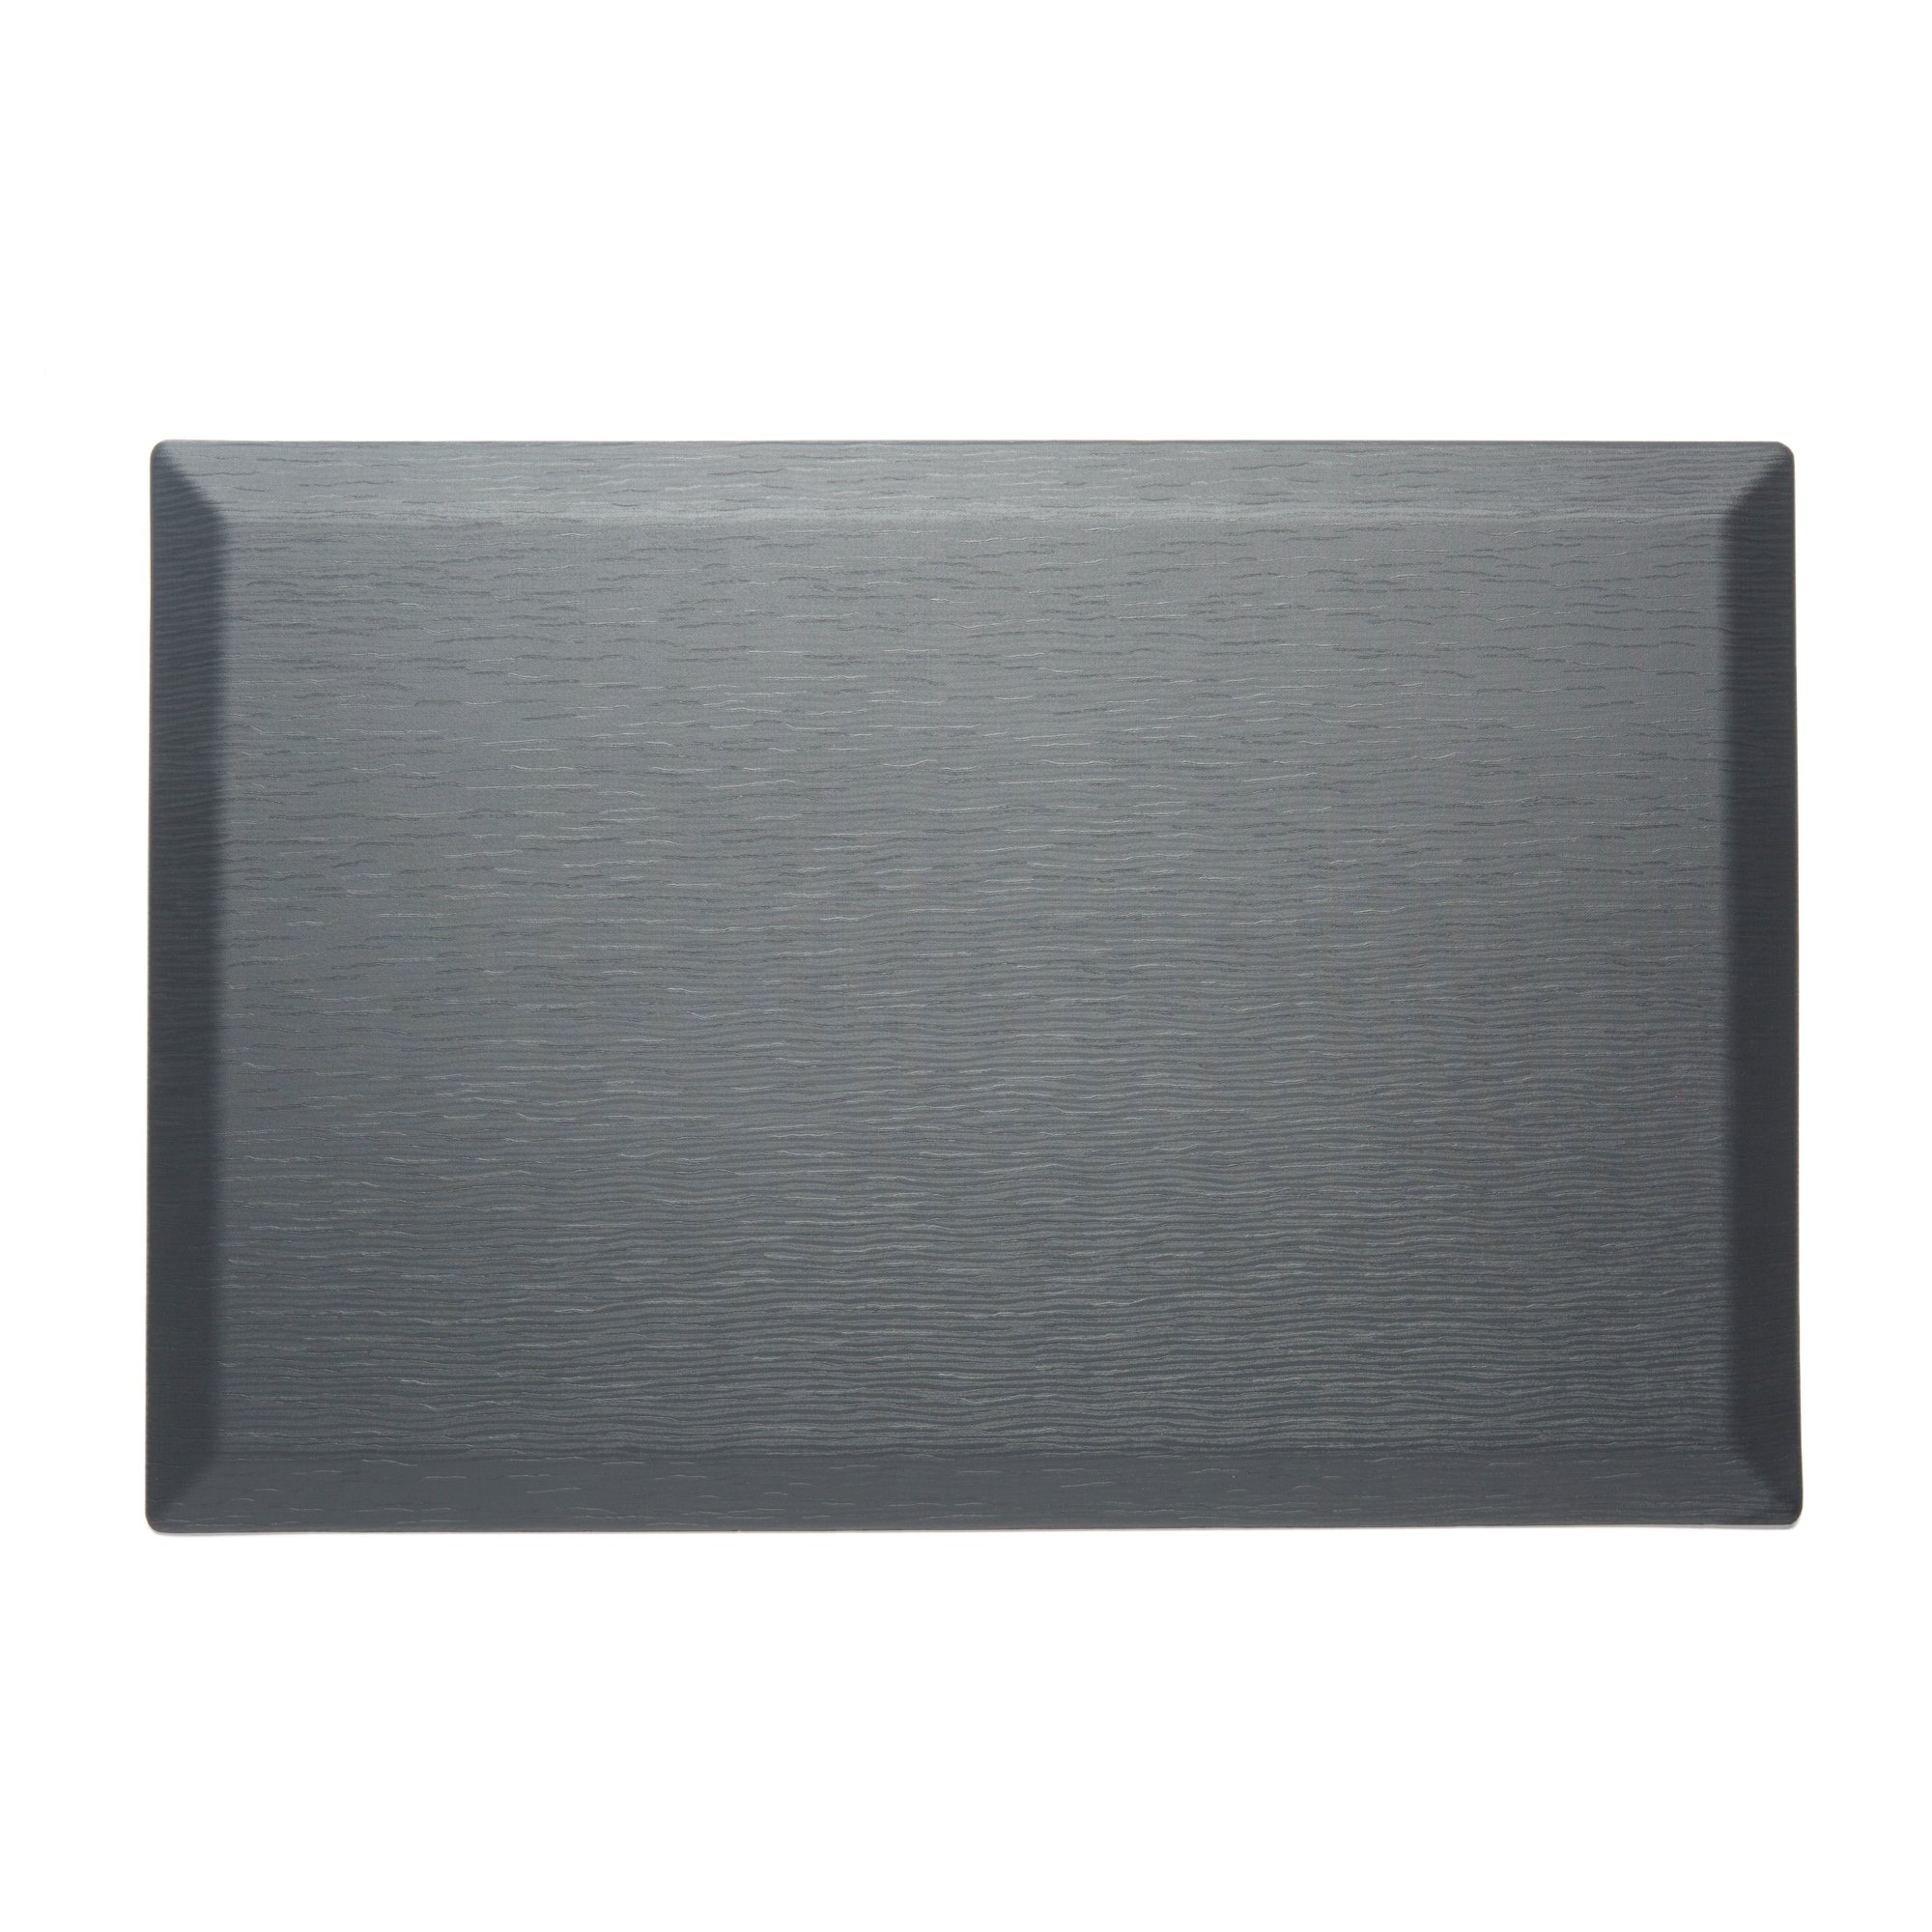 CumulusPRO Commercial Couture Strata Slate Grey Anti-Fatigue Comfort Mat, Office Mat, Stand Up Desk Mat, Kitchen Mat 24 in. x 36 in. x 3/4 in.